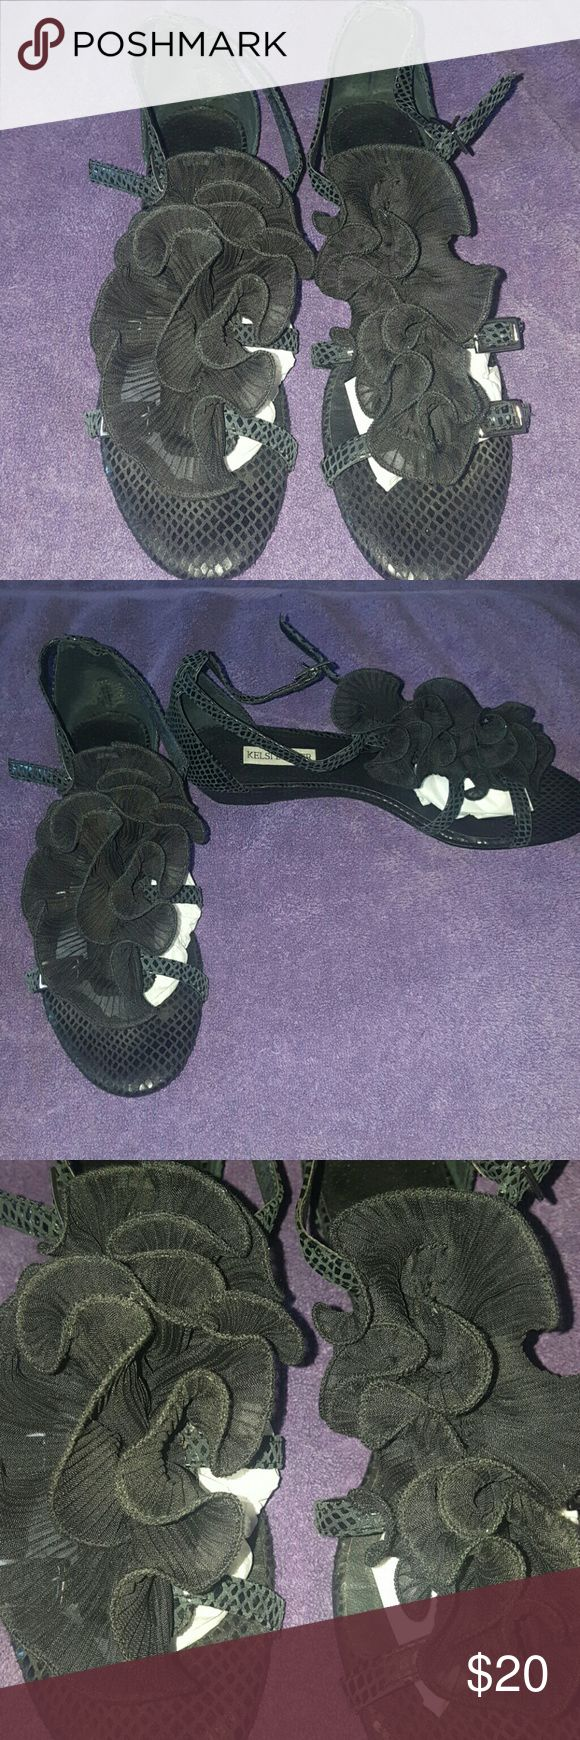 Kelsi Dagger Used Kelsi Dagger shoes in excellent condition worn a few times great for the summer Kelsi Dagger Shoes